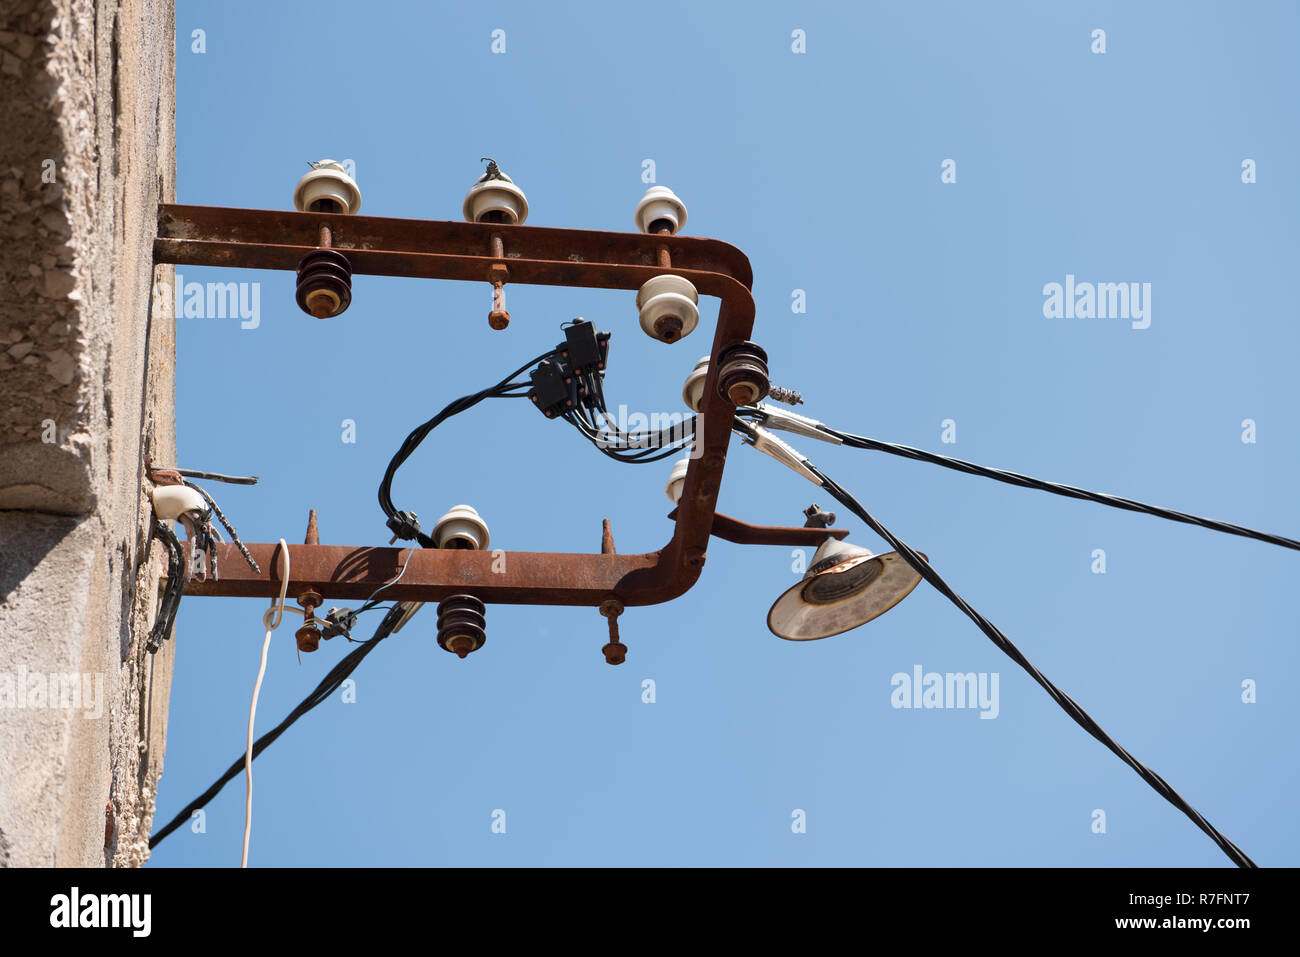 hight resolution of electric wires attached on an old stone house old architecture electricity transmission light